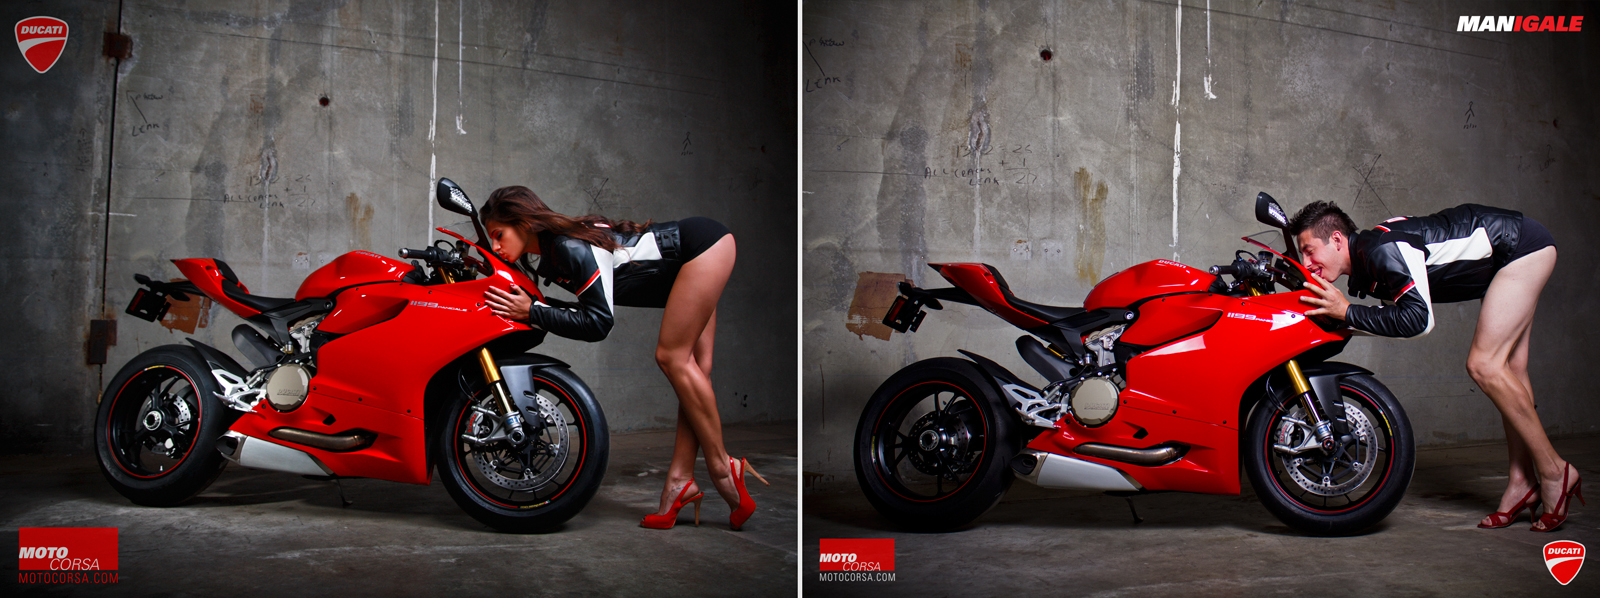 manigale-ducati-1199-wallpaper-20-comp